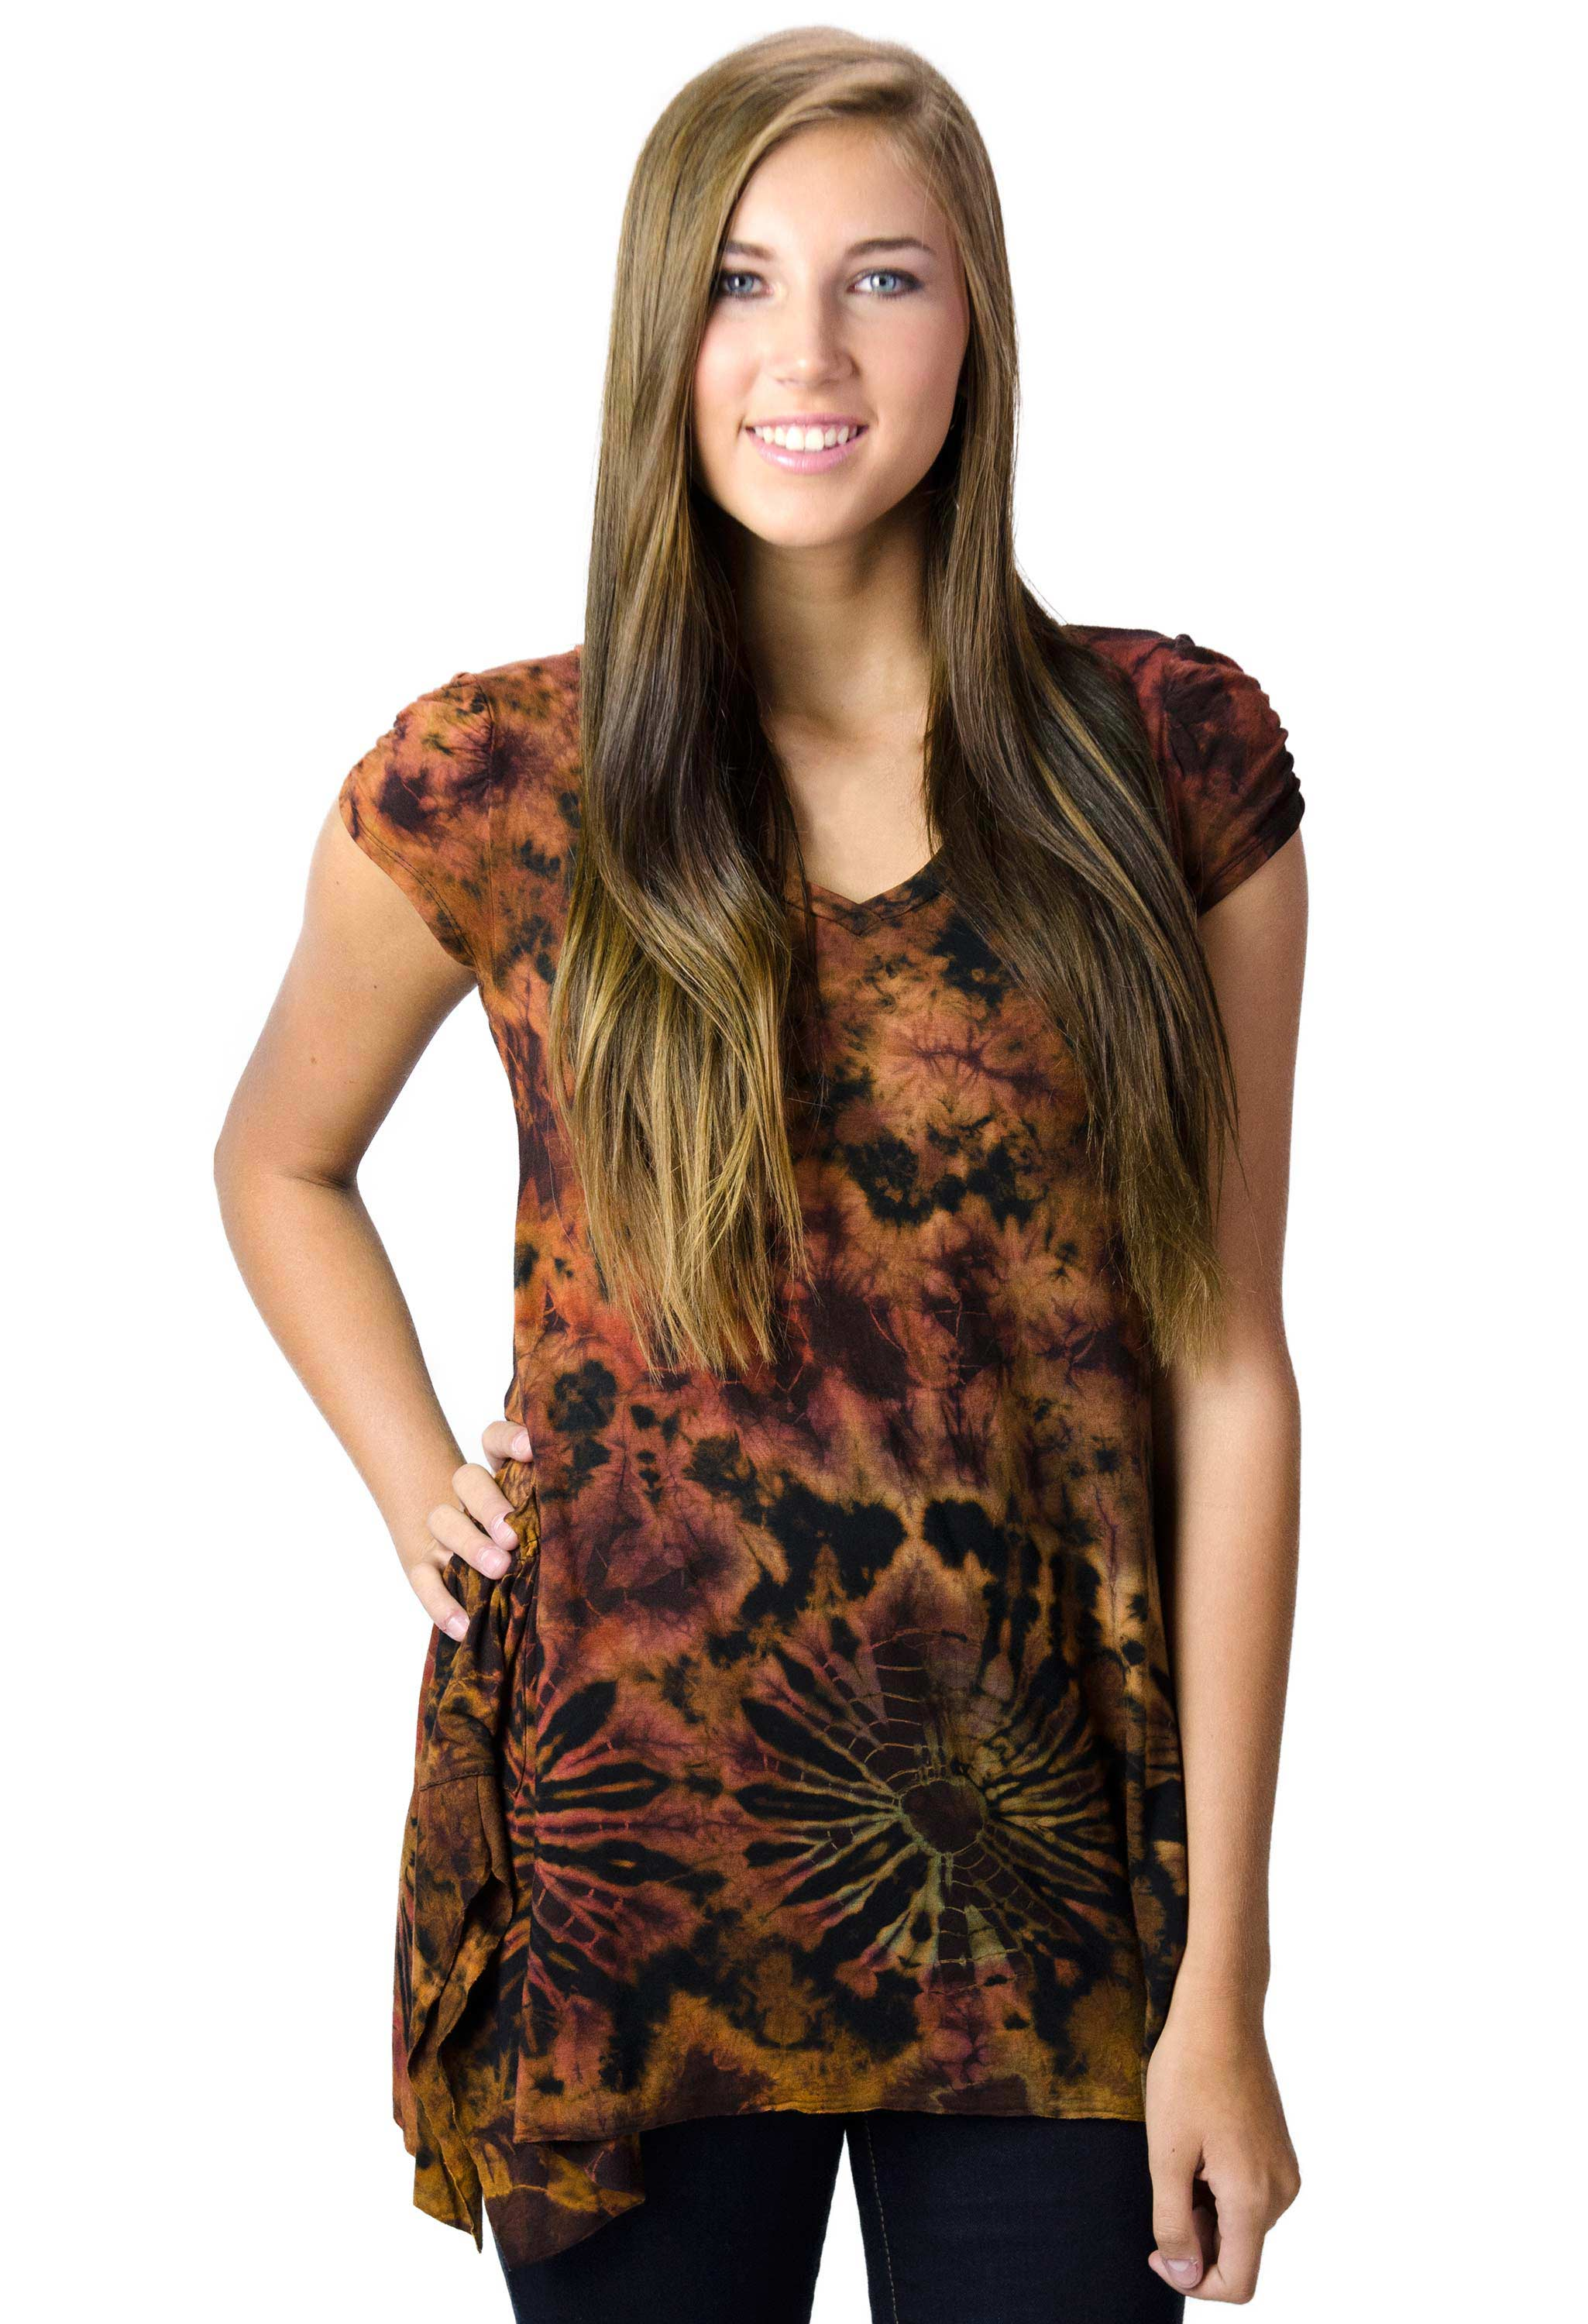 V-neck Blouse Hand Painted Tie Dye - Rust Multi